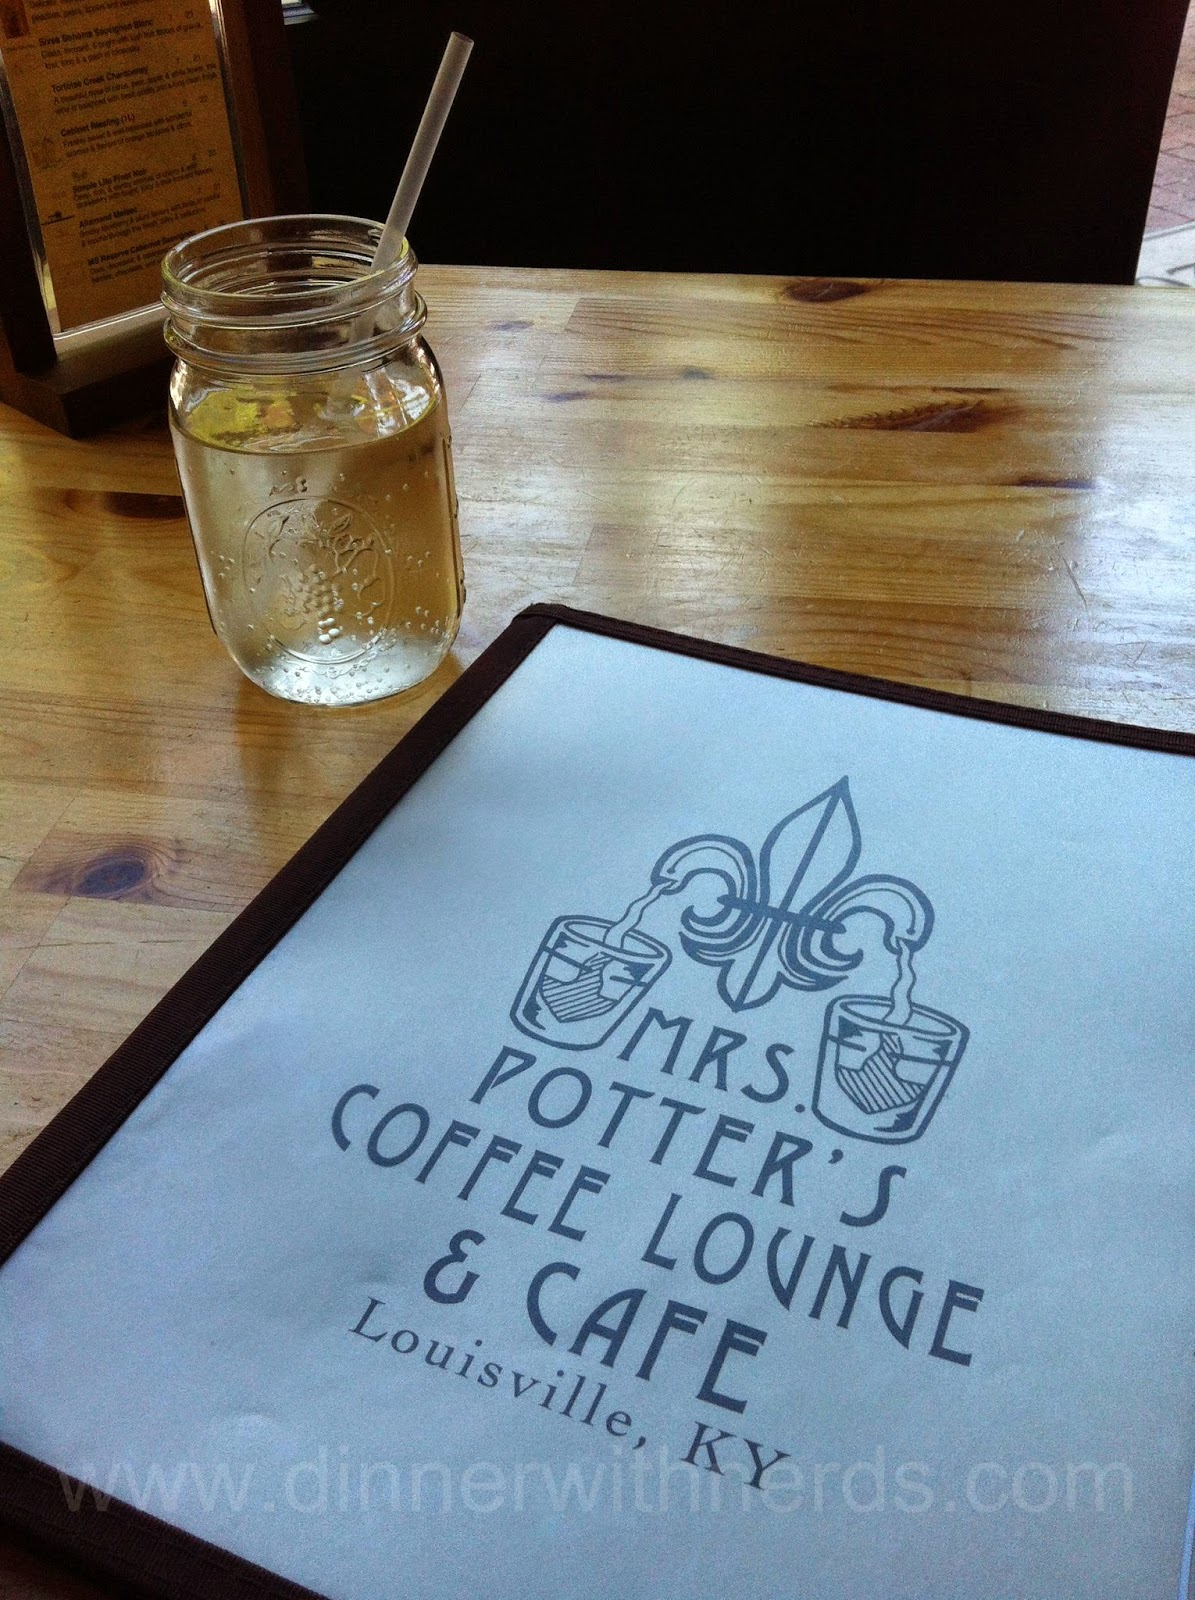 Mrs Potter's Coffee Lounge and Cafe